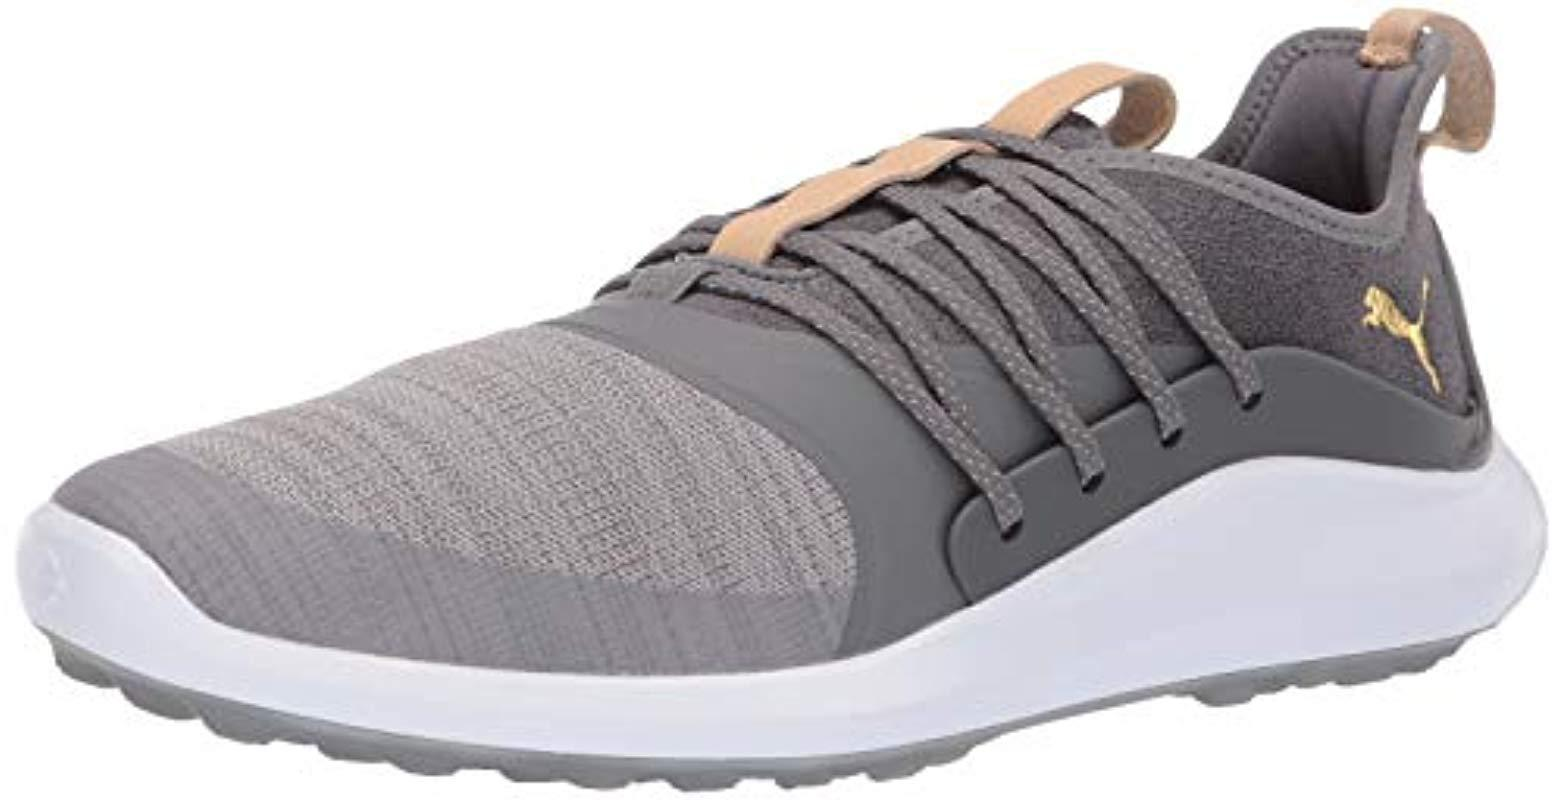 9a7eb36a427e Lyst - PUMA Ignite Nxt Solelace Golf Shoe in Gray for Men - Save 29%